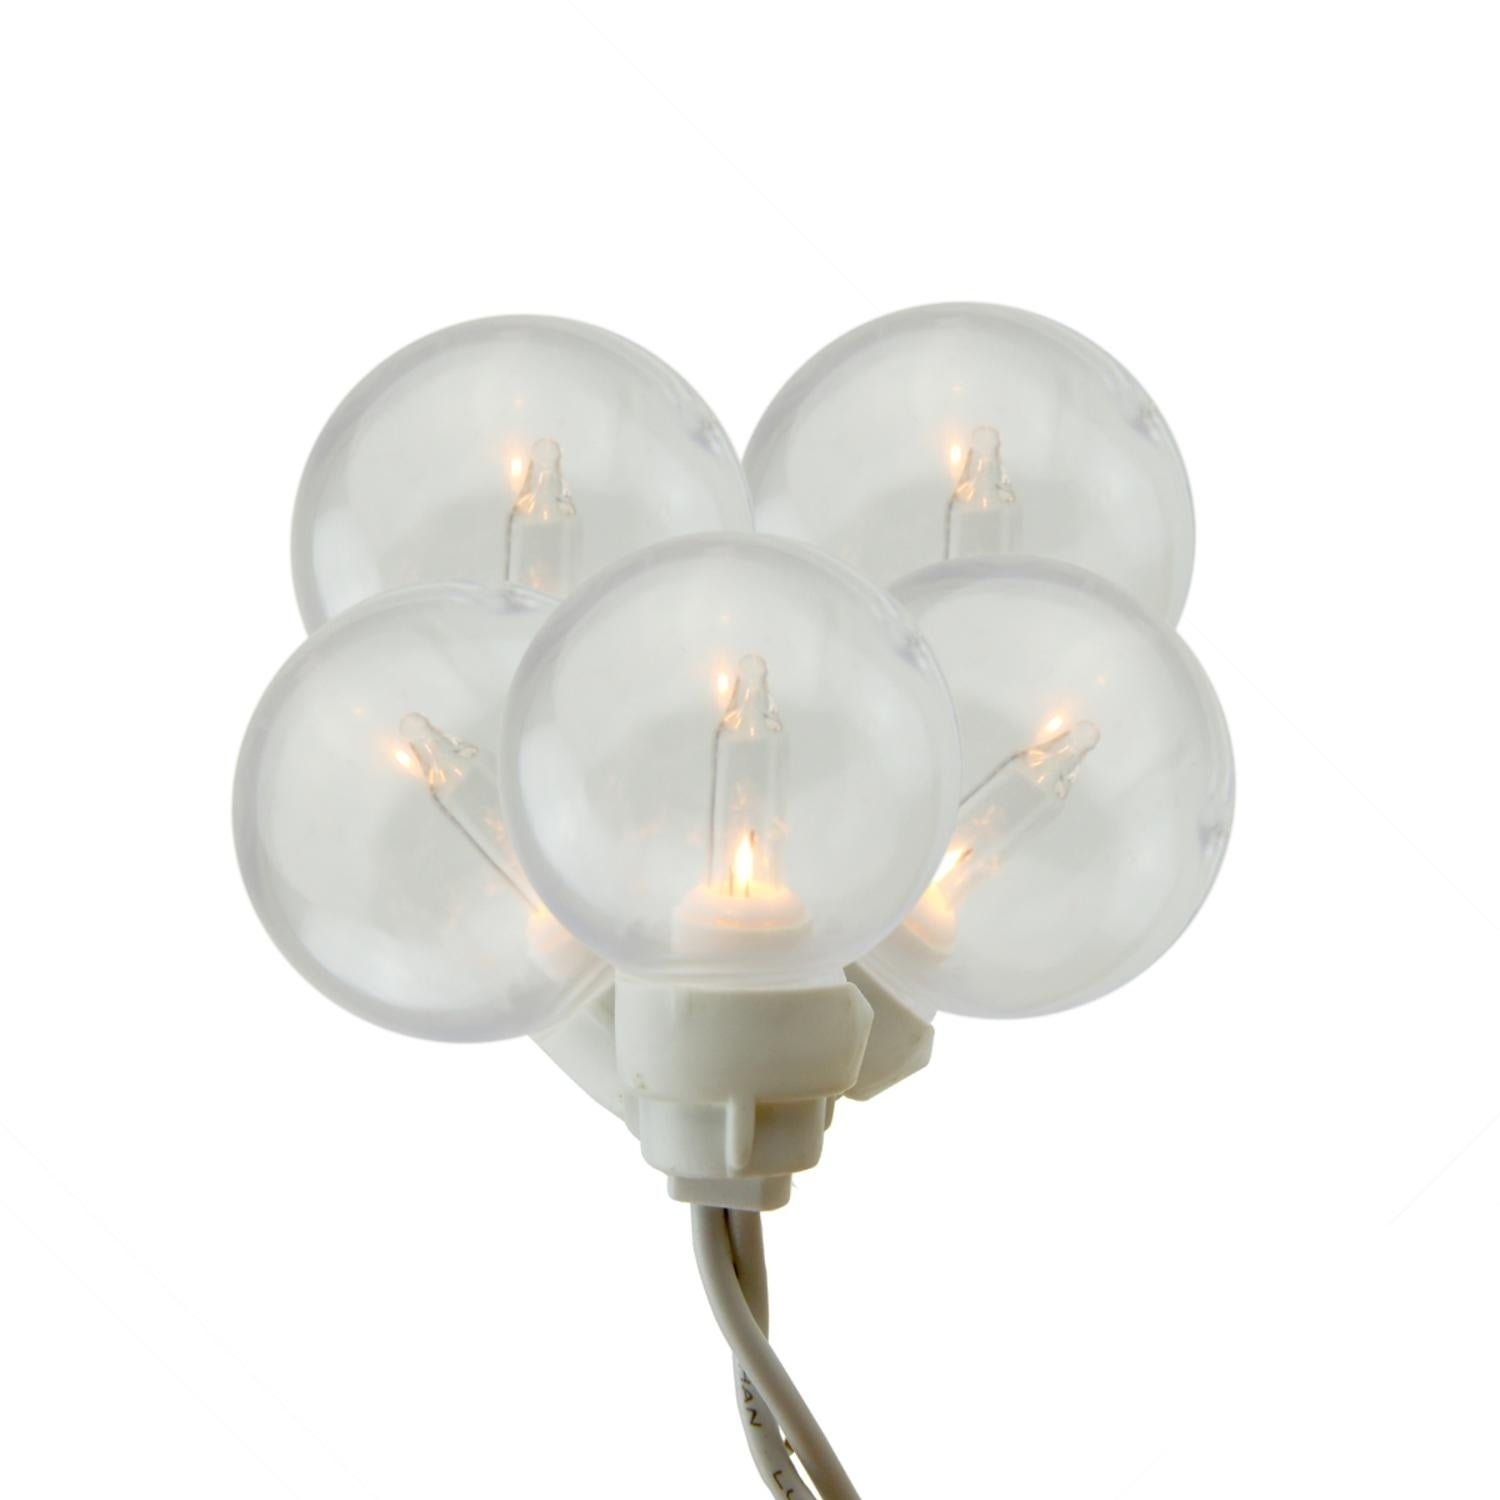 Shop Set of 100 Clear G30 Globe Icicle Christmas Lights - White Wire ...